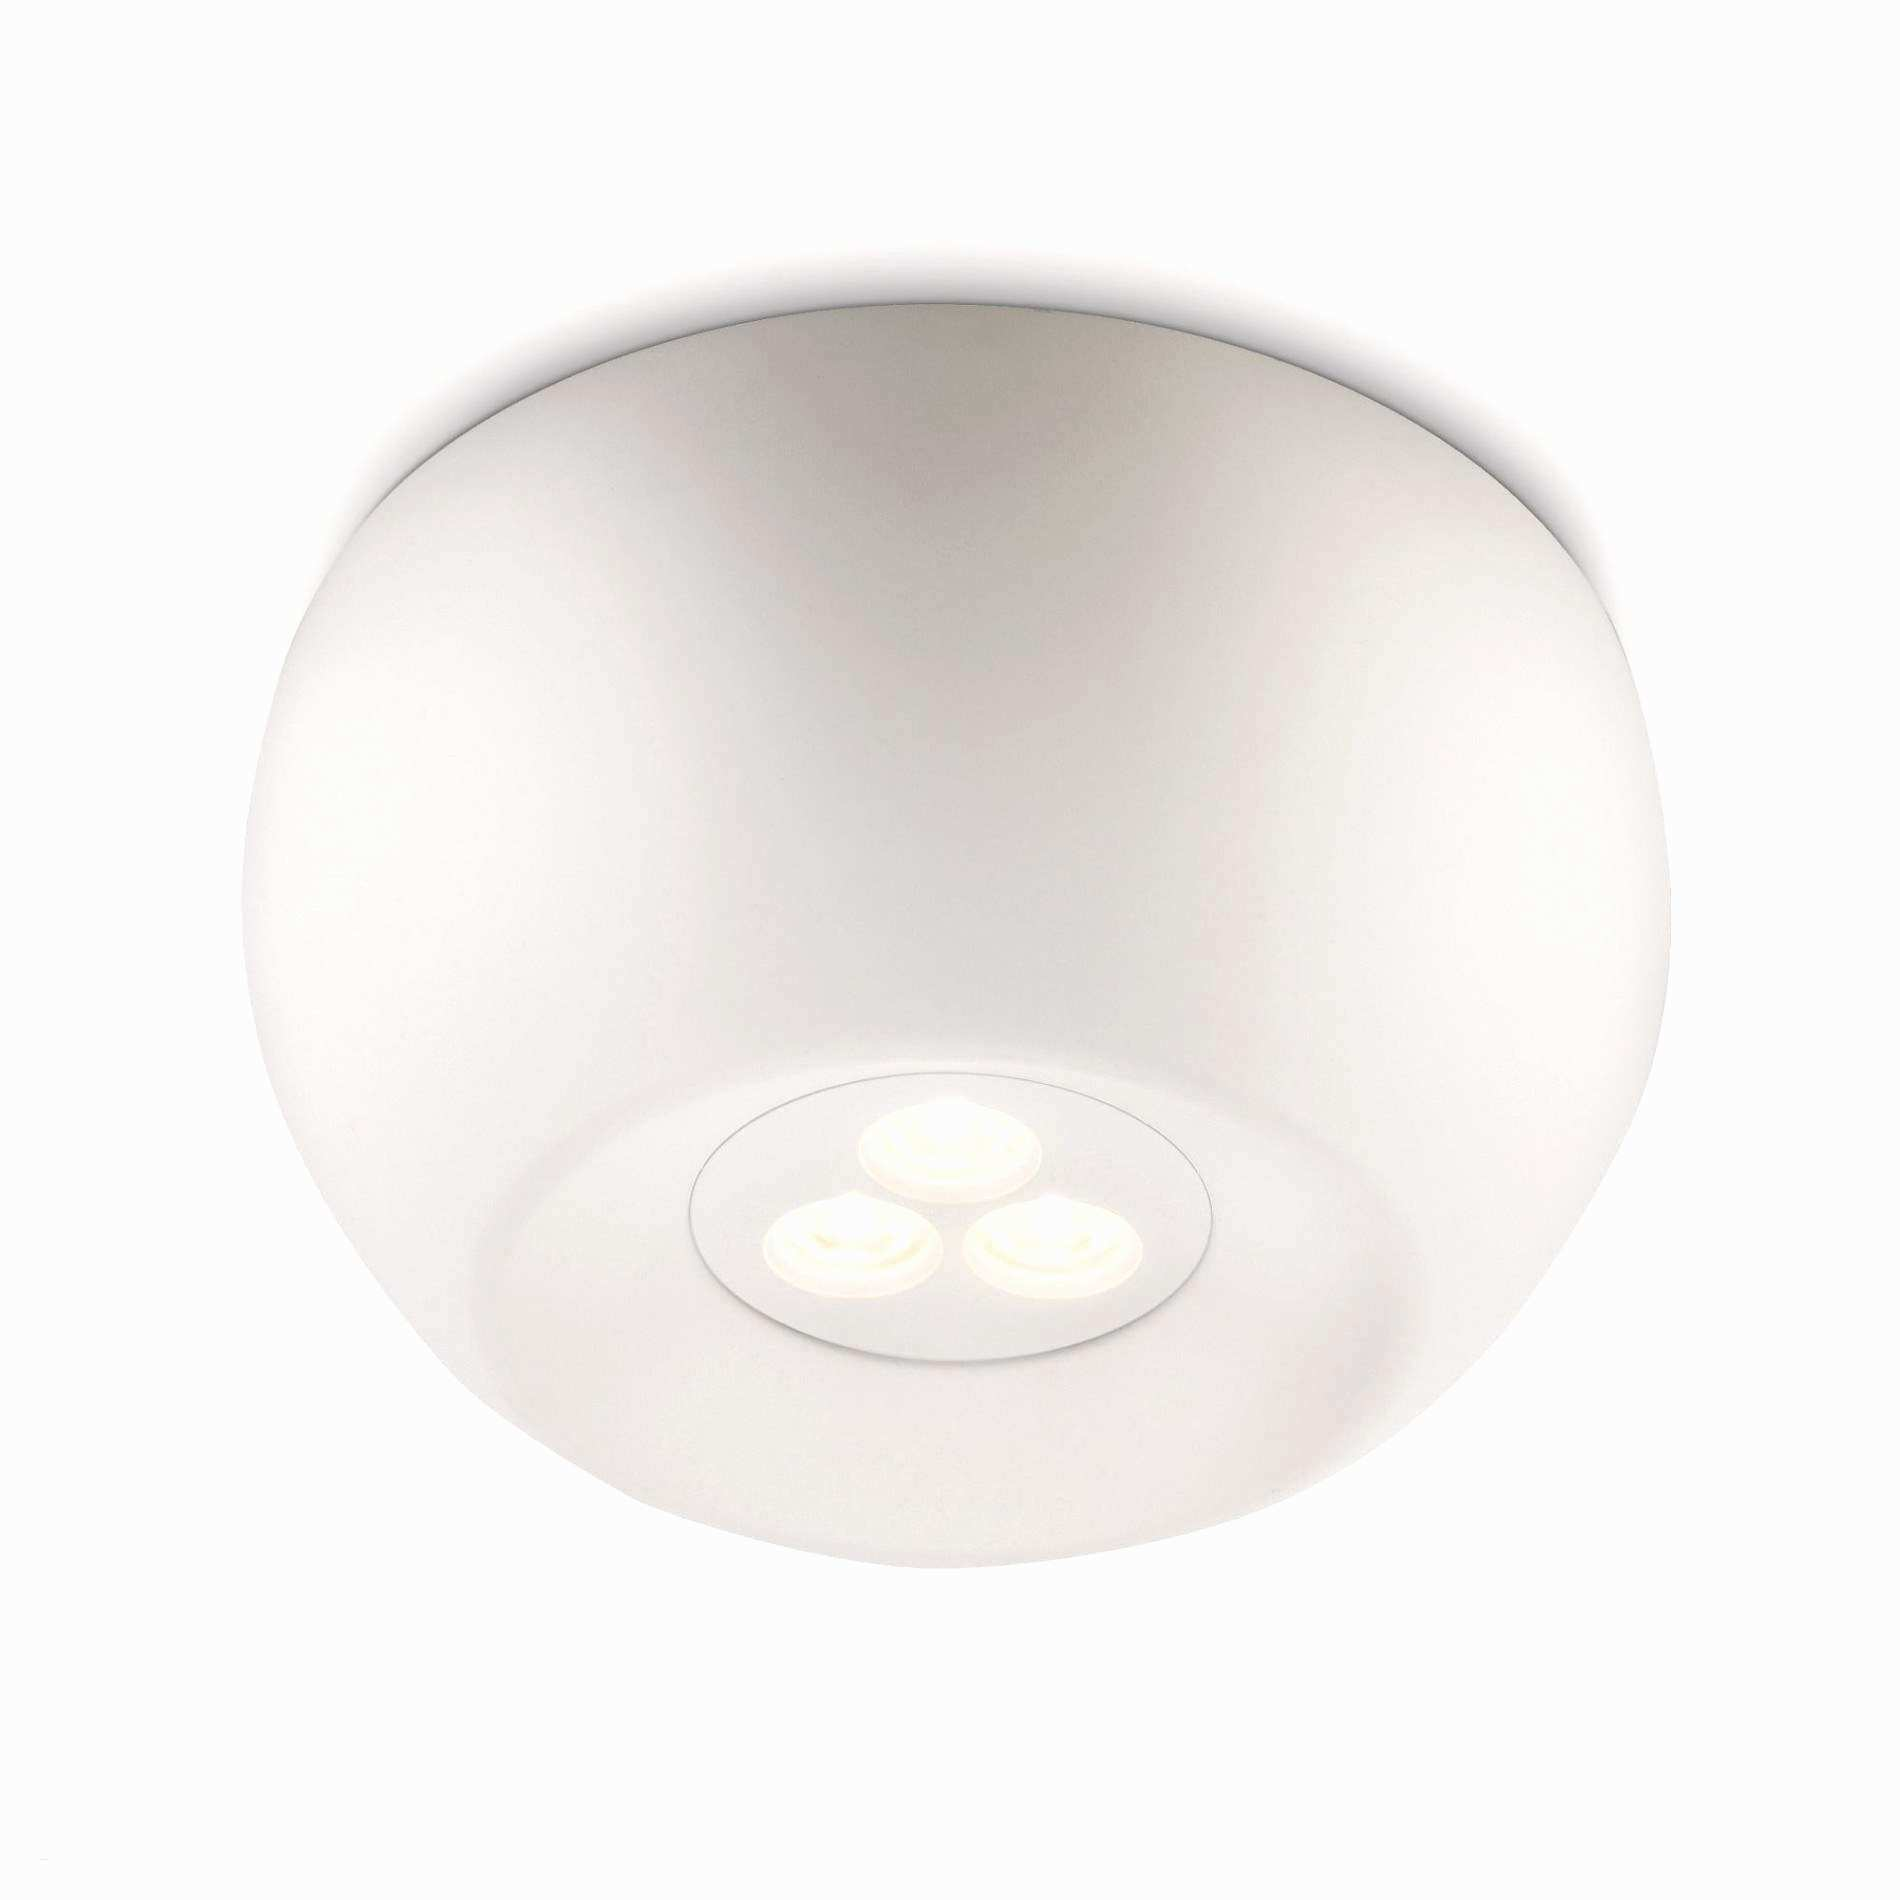 Oval Frame Fresh Led Indirekte Beleuchtung Schone Led Beleuchtung